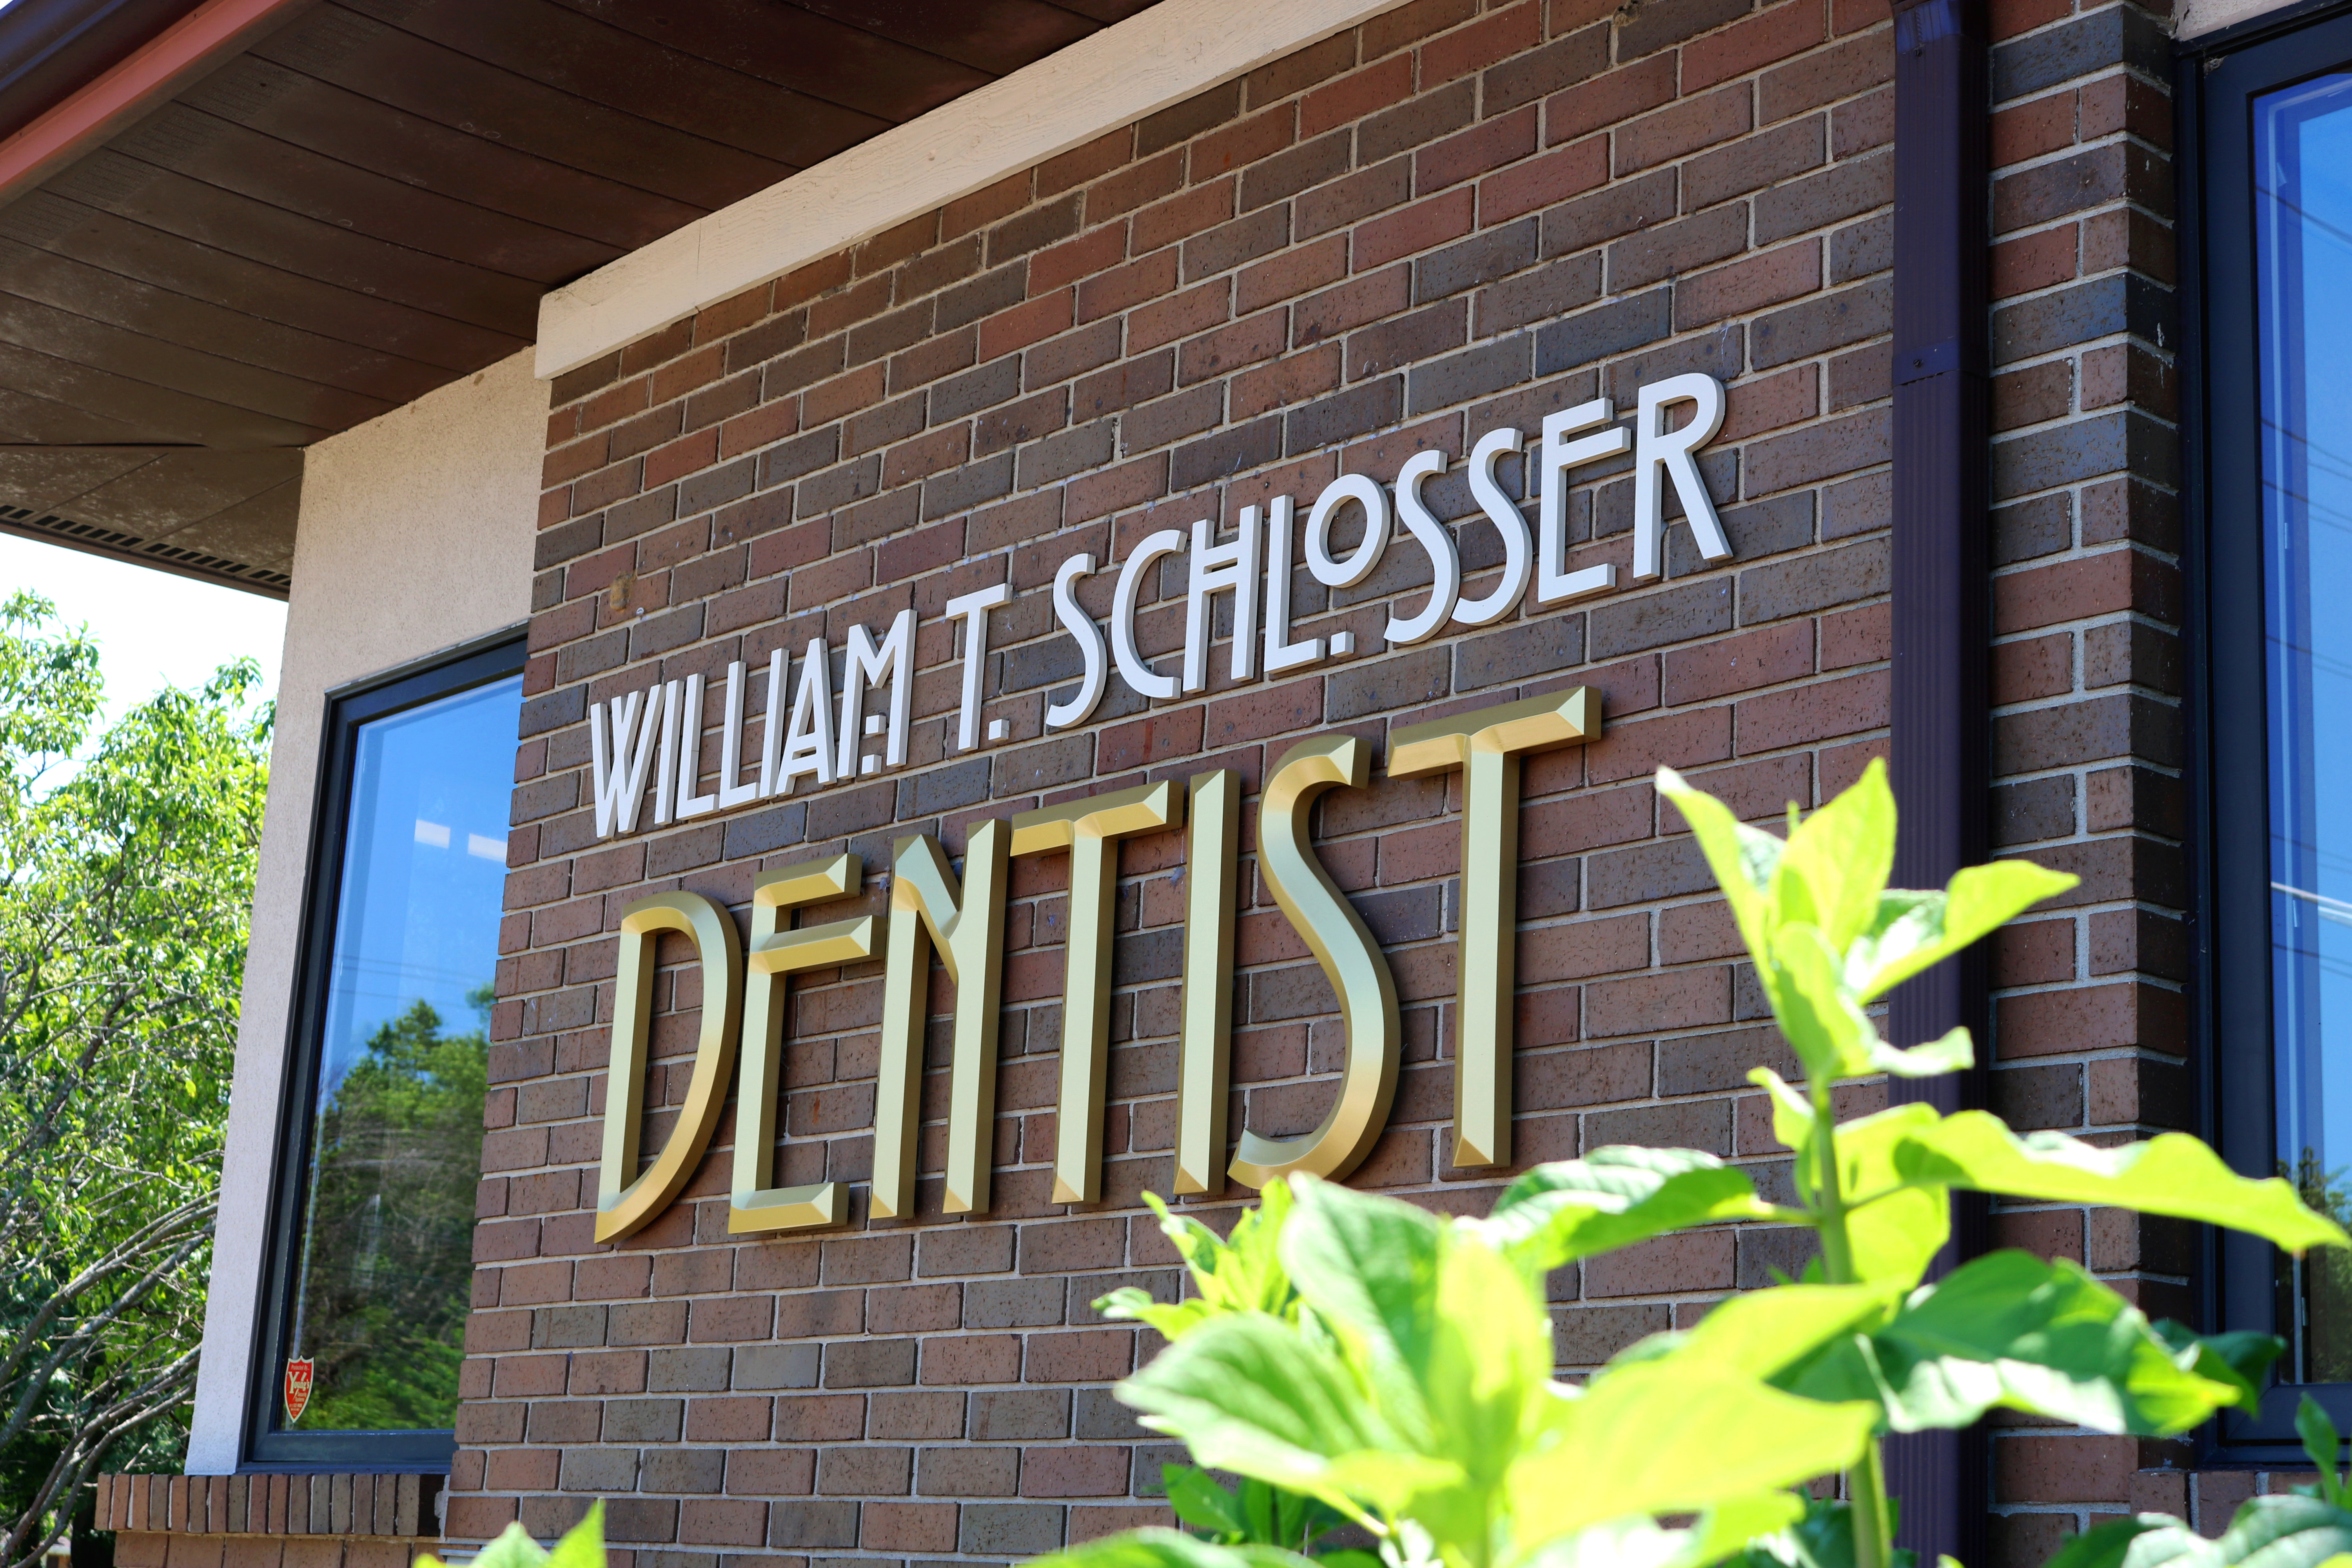 William T. Schlosser, DMD, Ltd. - General & Urgent Dental Care